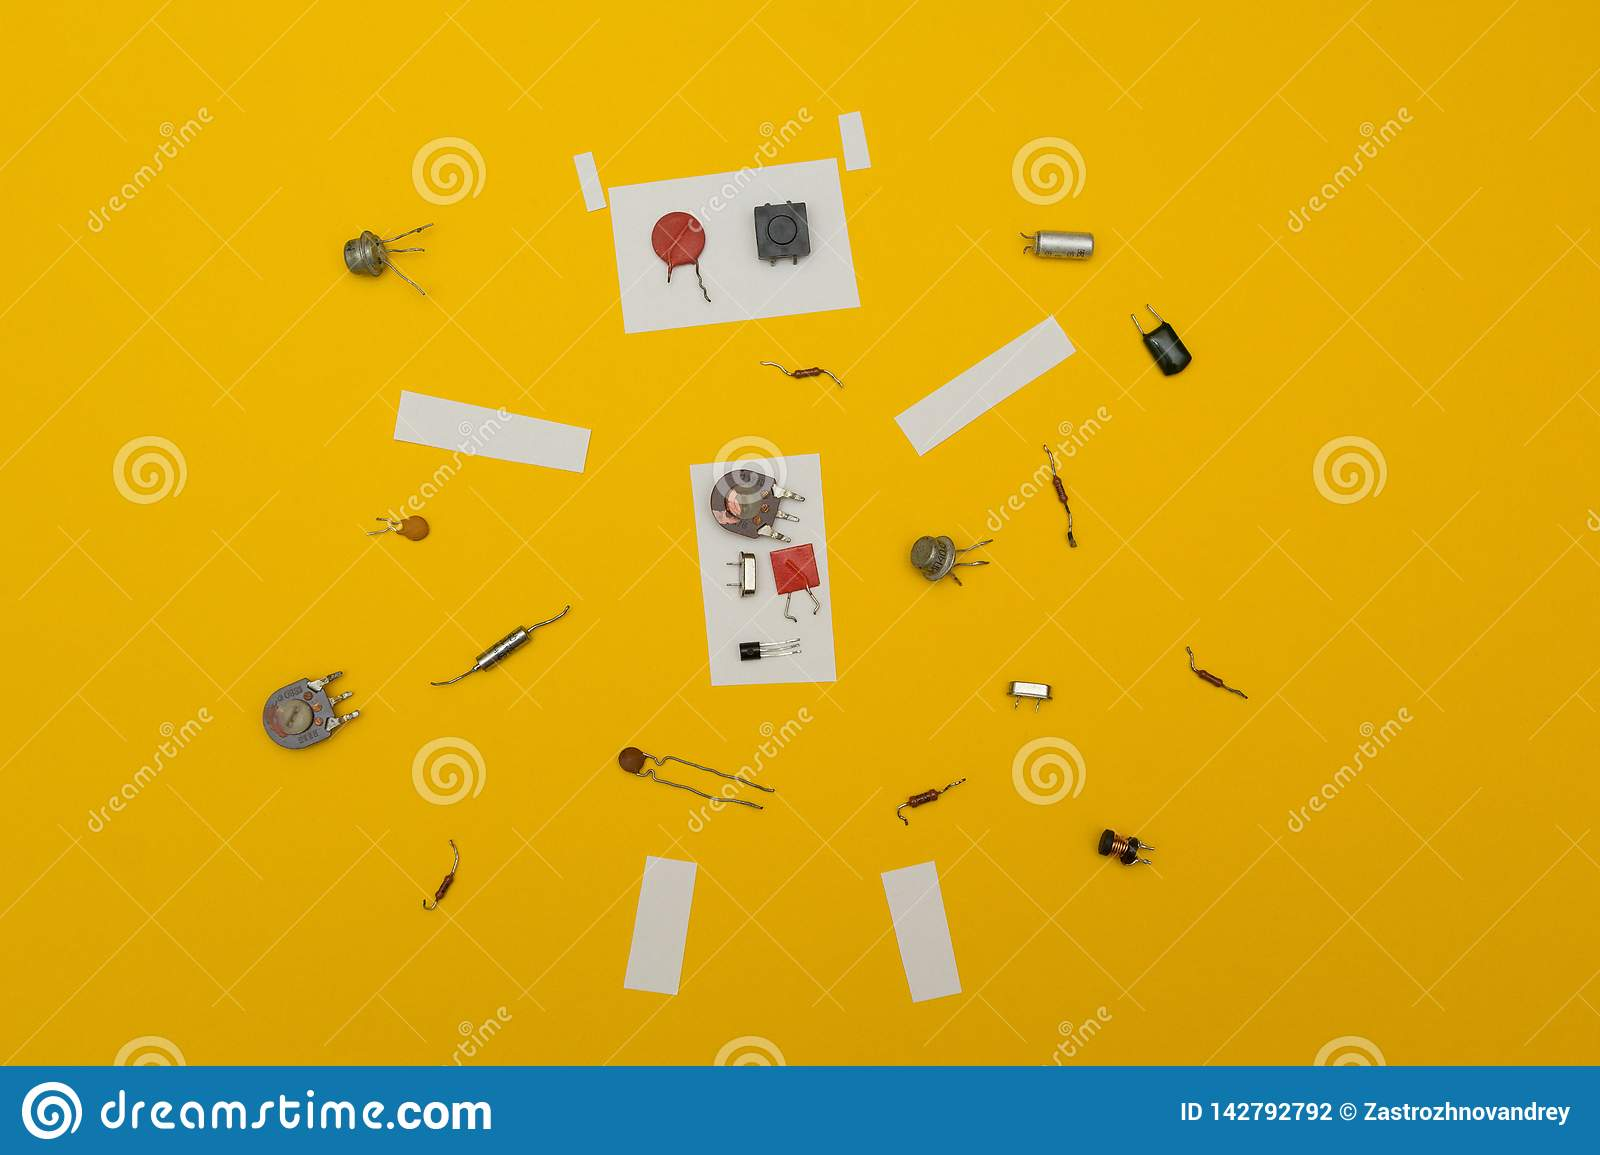 Disassembled robot on a yellow background